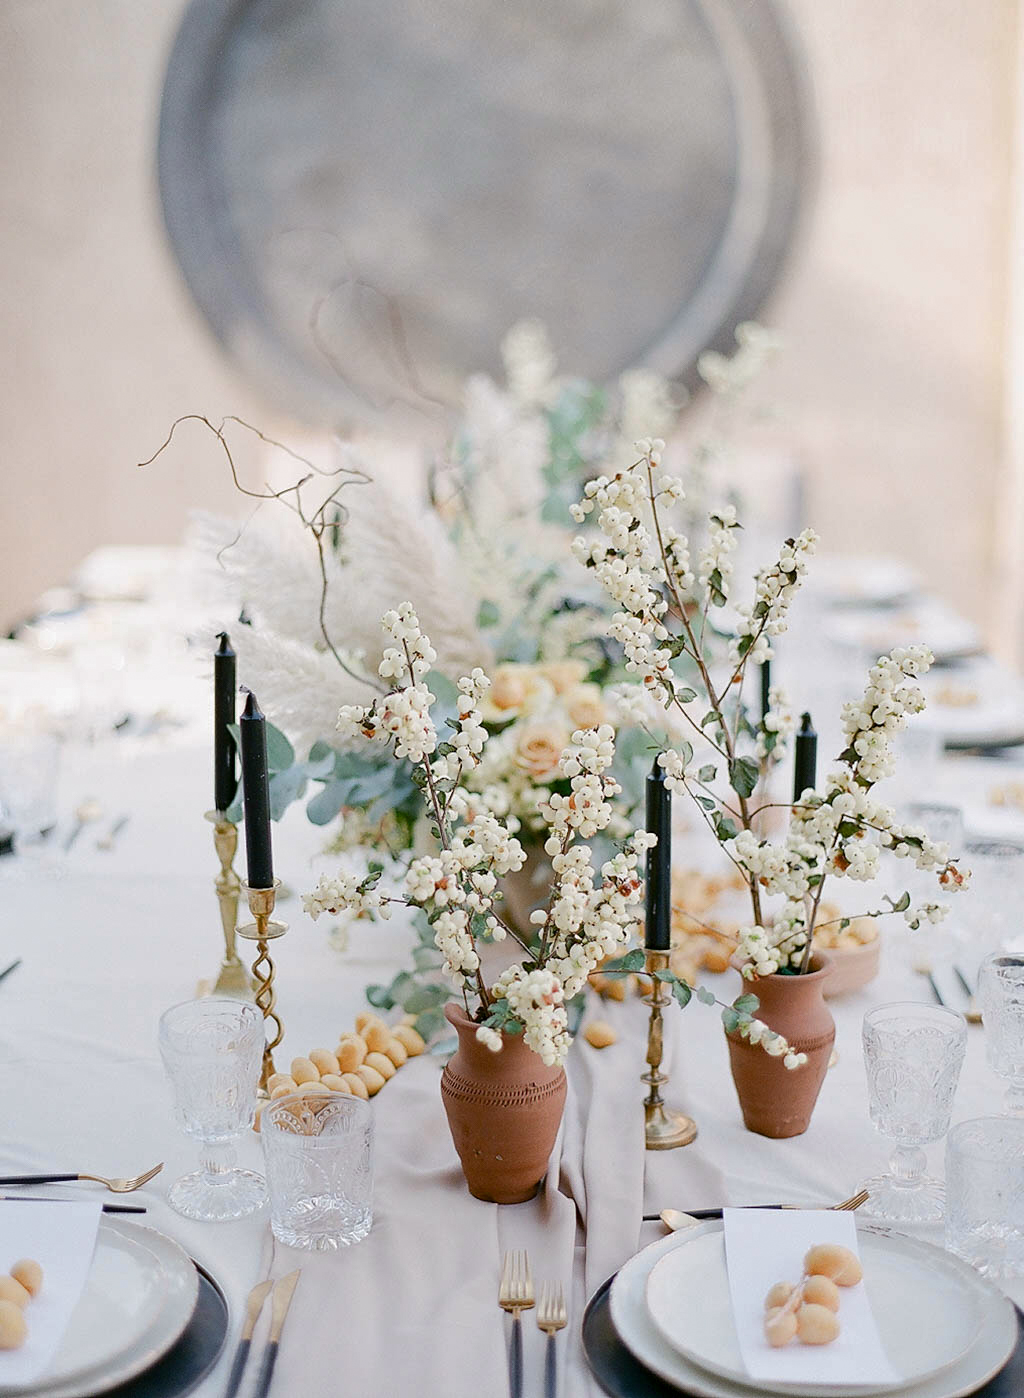 Winter Wedding Ideas for a Cozy, Festive Fête | Martha Stewart